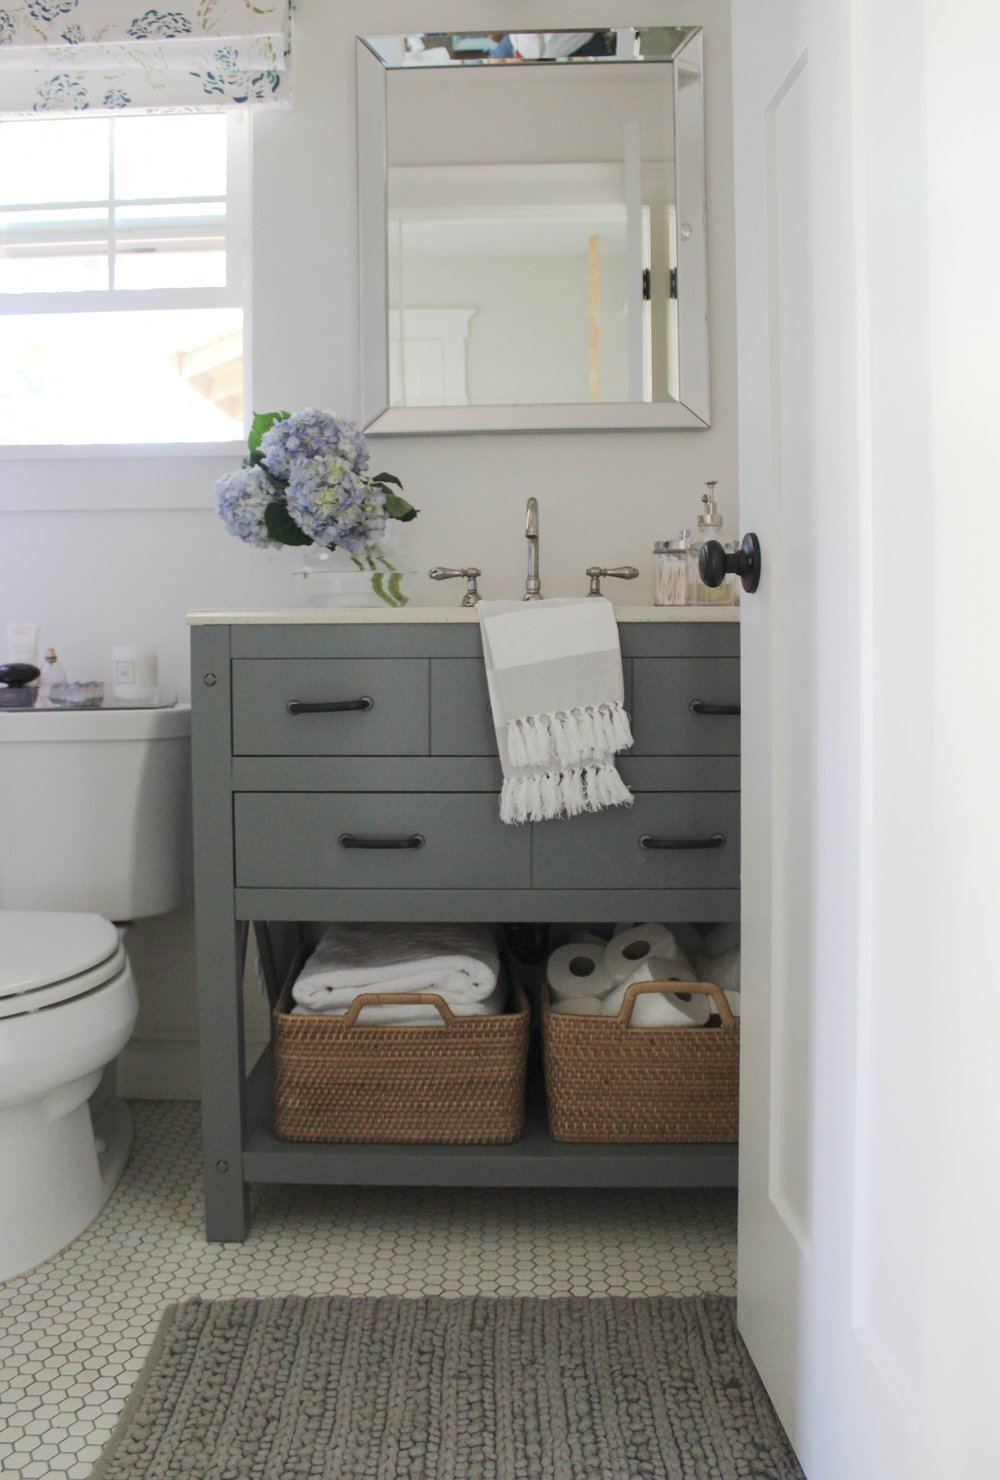 I Painted The Bathroom Vanity, Hung A Mirror And Adding A New Light Fixture  Added Baskets In The Open Shelf Area To Hold Sheets And Towels And Thatu0027s  Where ...